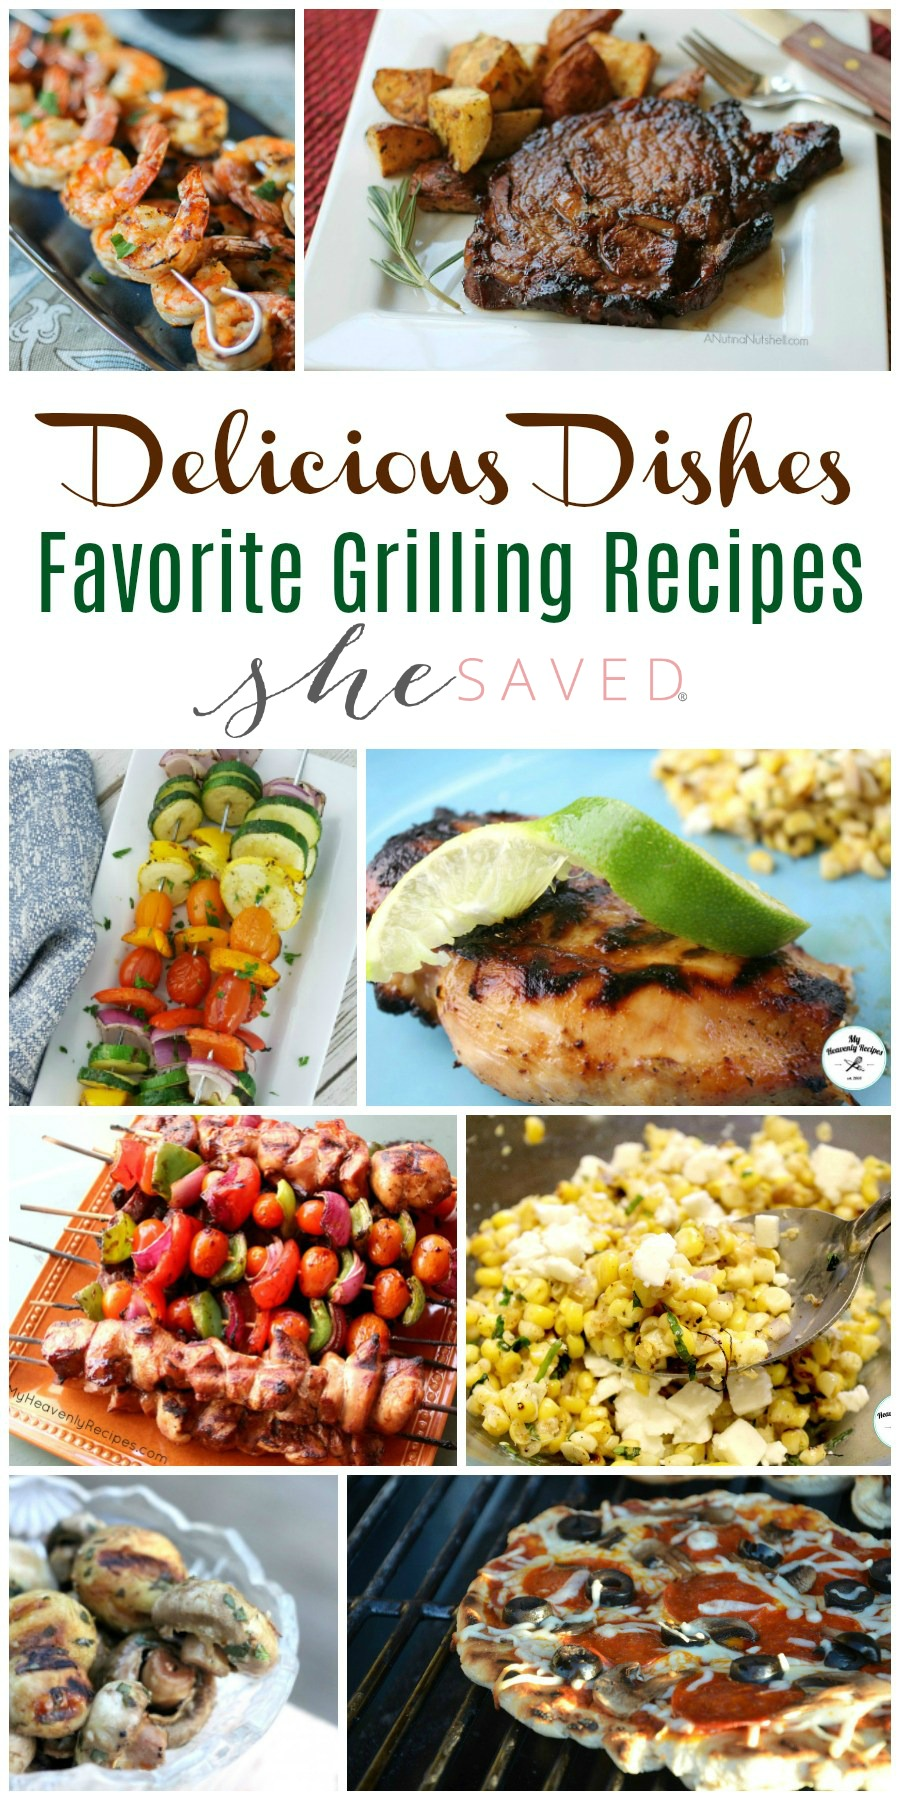 Looking to grill this summer? Check out these Favorite Grilling Recipes and you will be set for the summer!